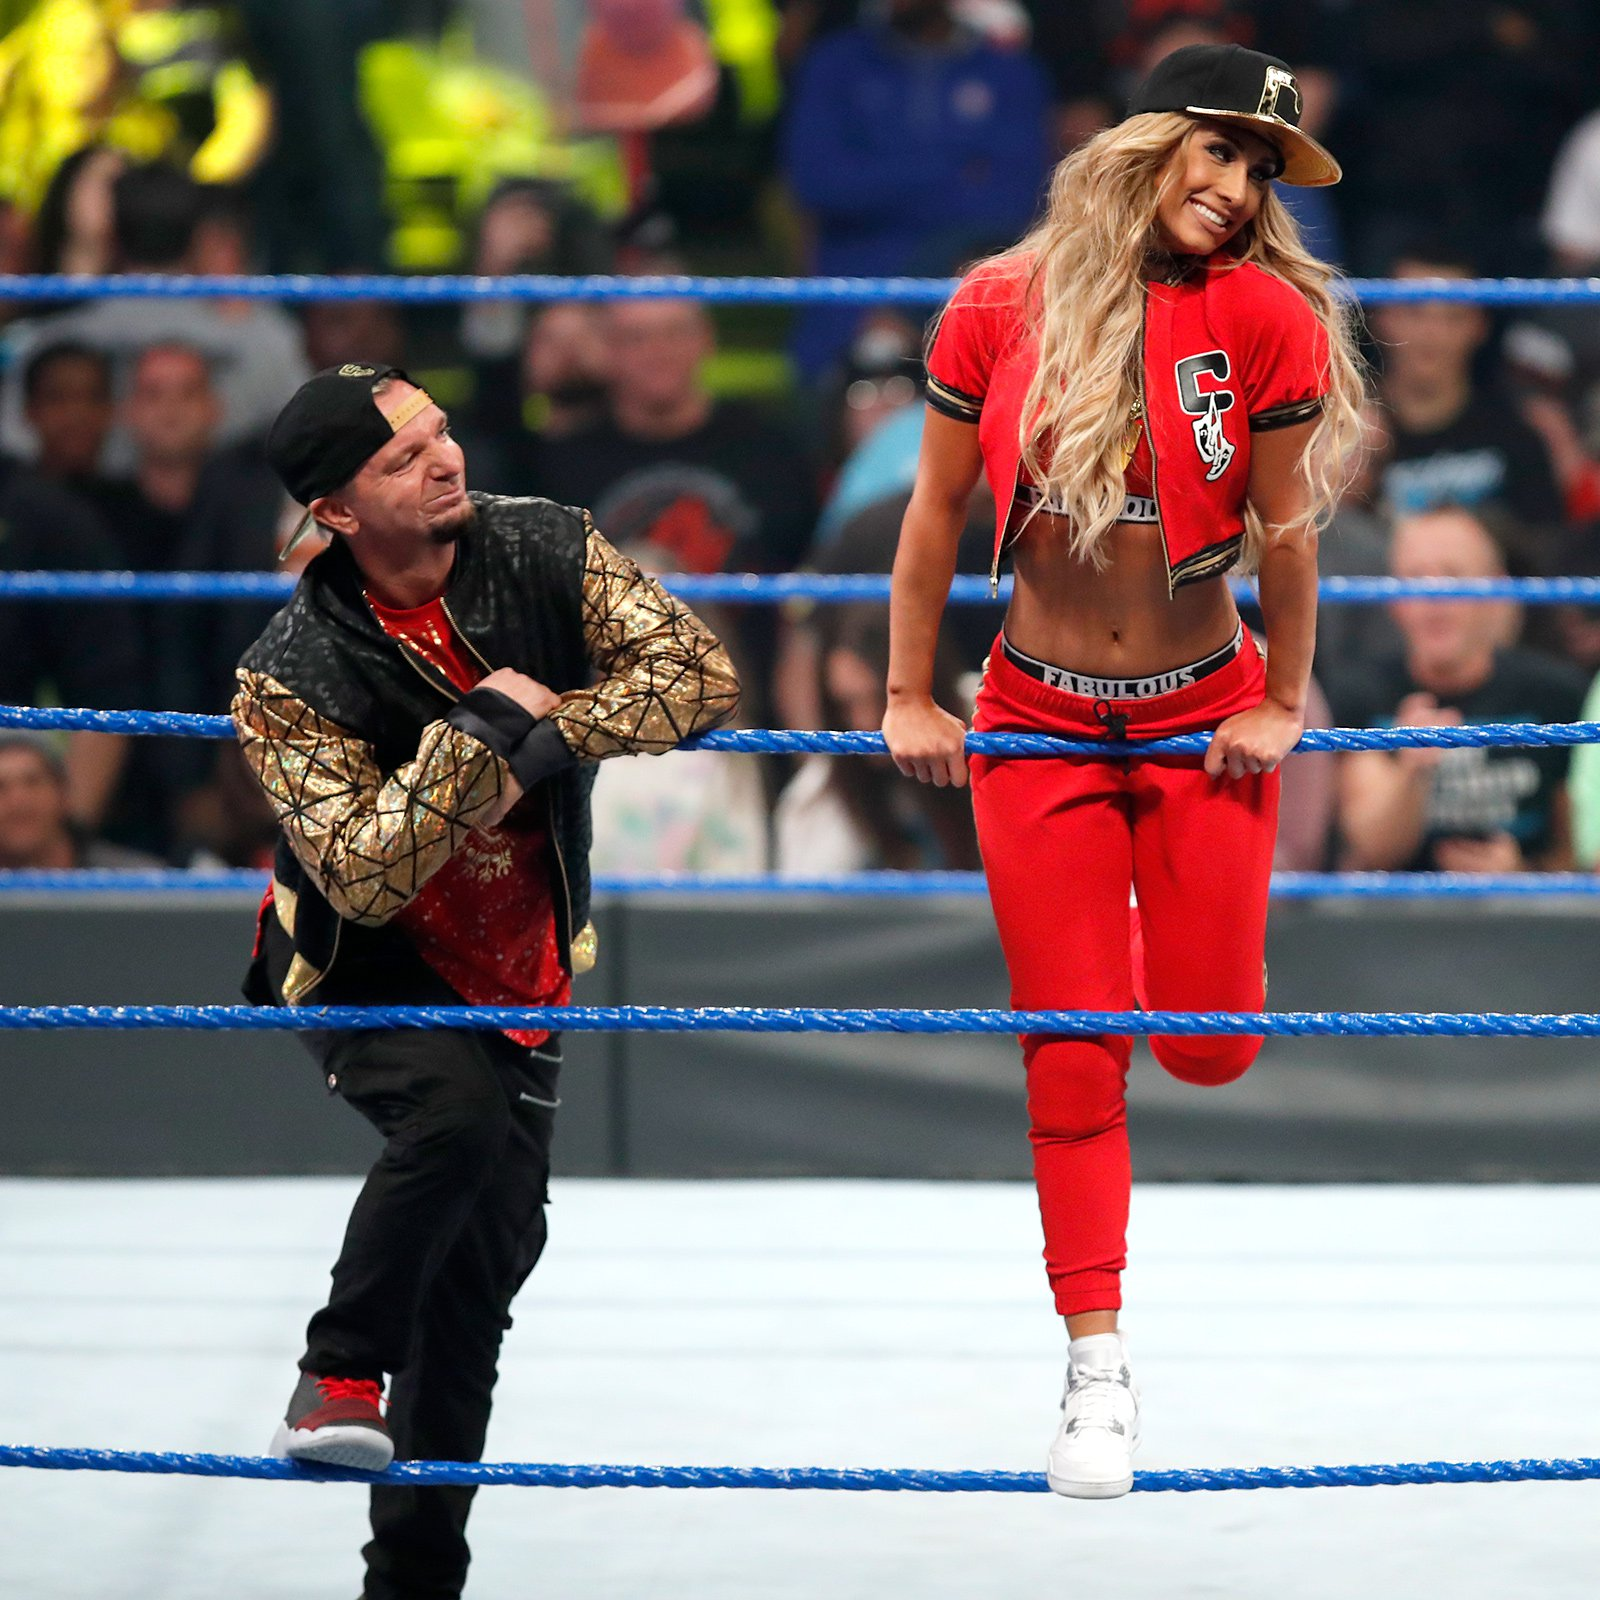 Carmella makes her way to the ring ready to do battle.